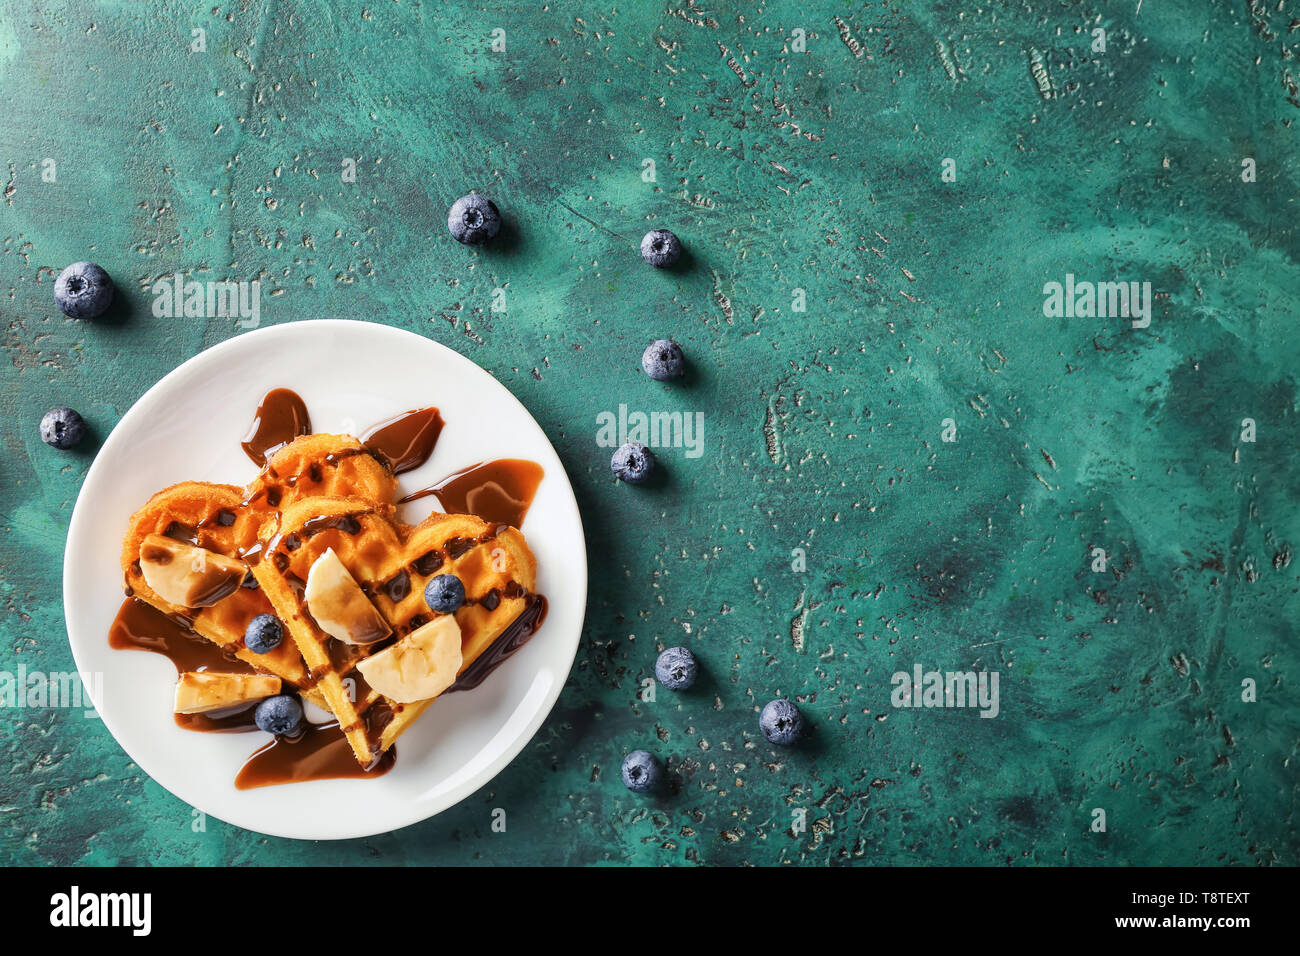 Heart shaped waffles with banana slices, blueberries and chocolate sauce on color table - Stock Image